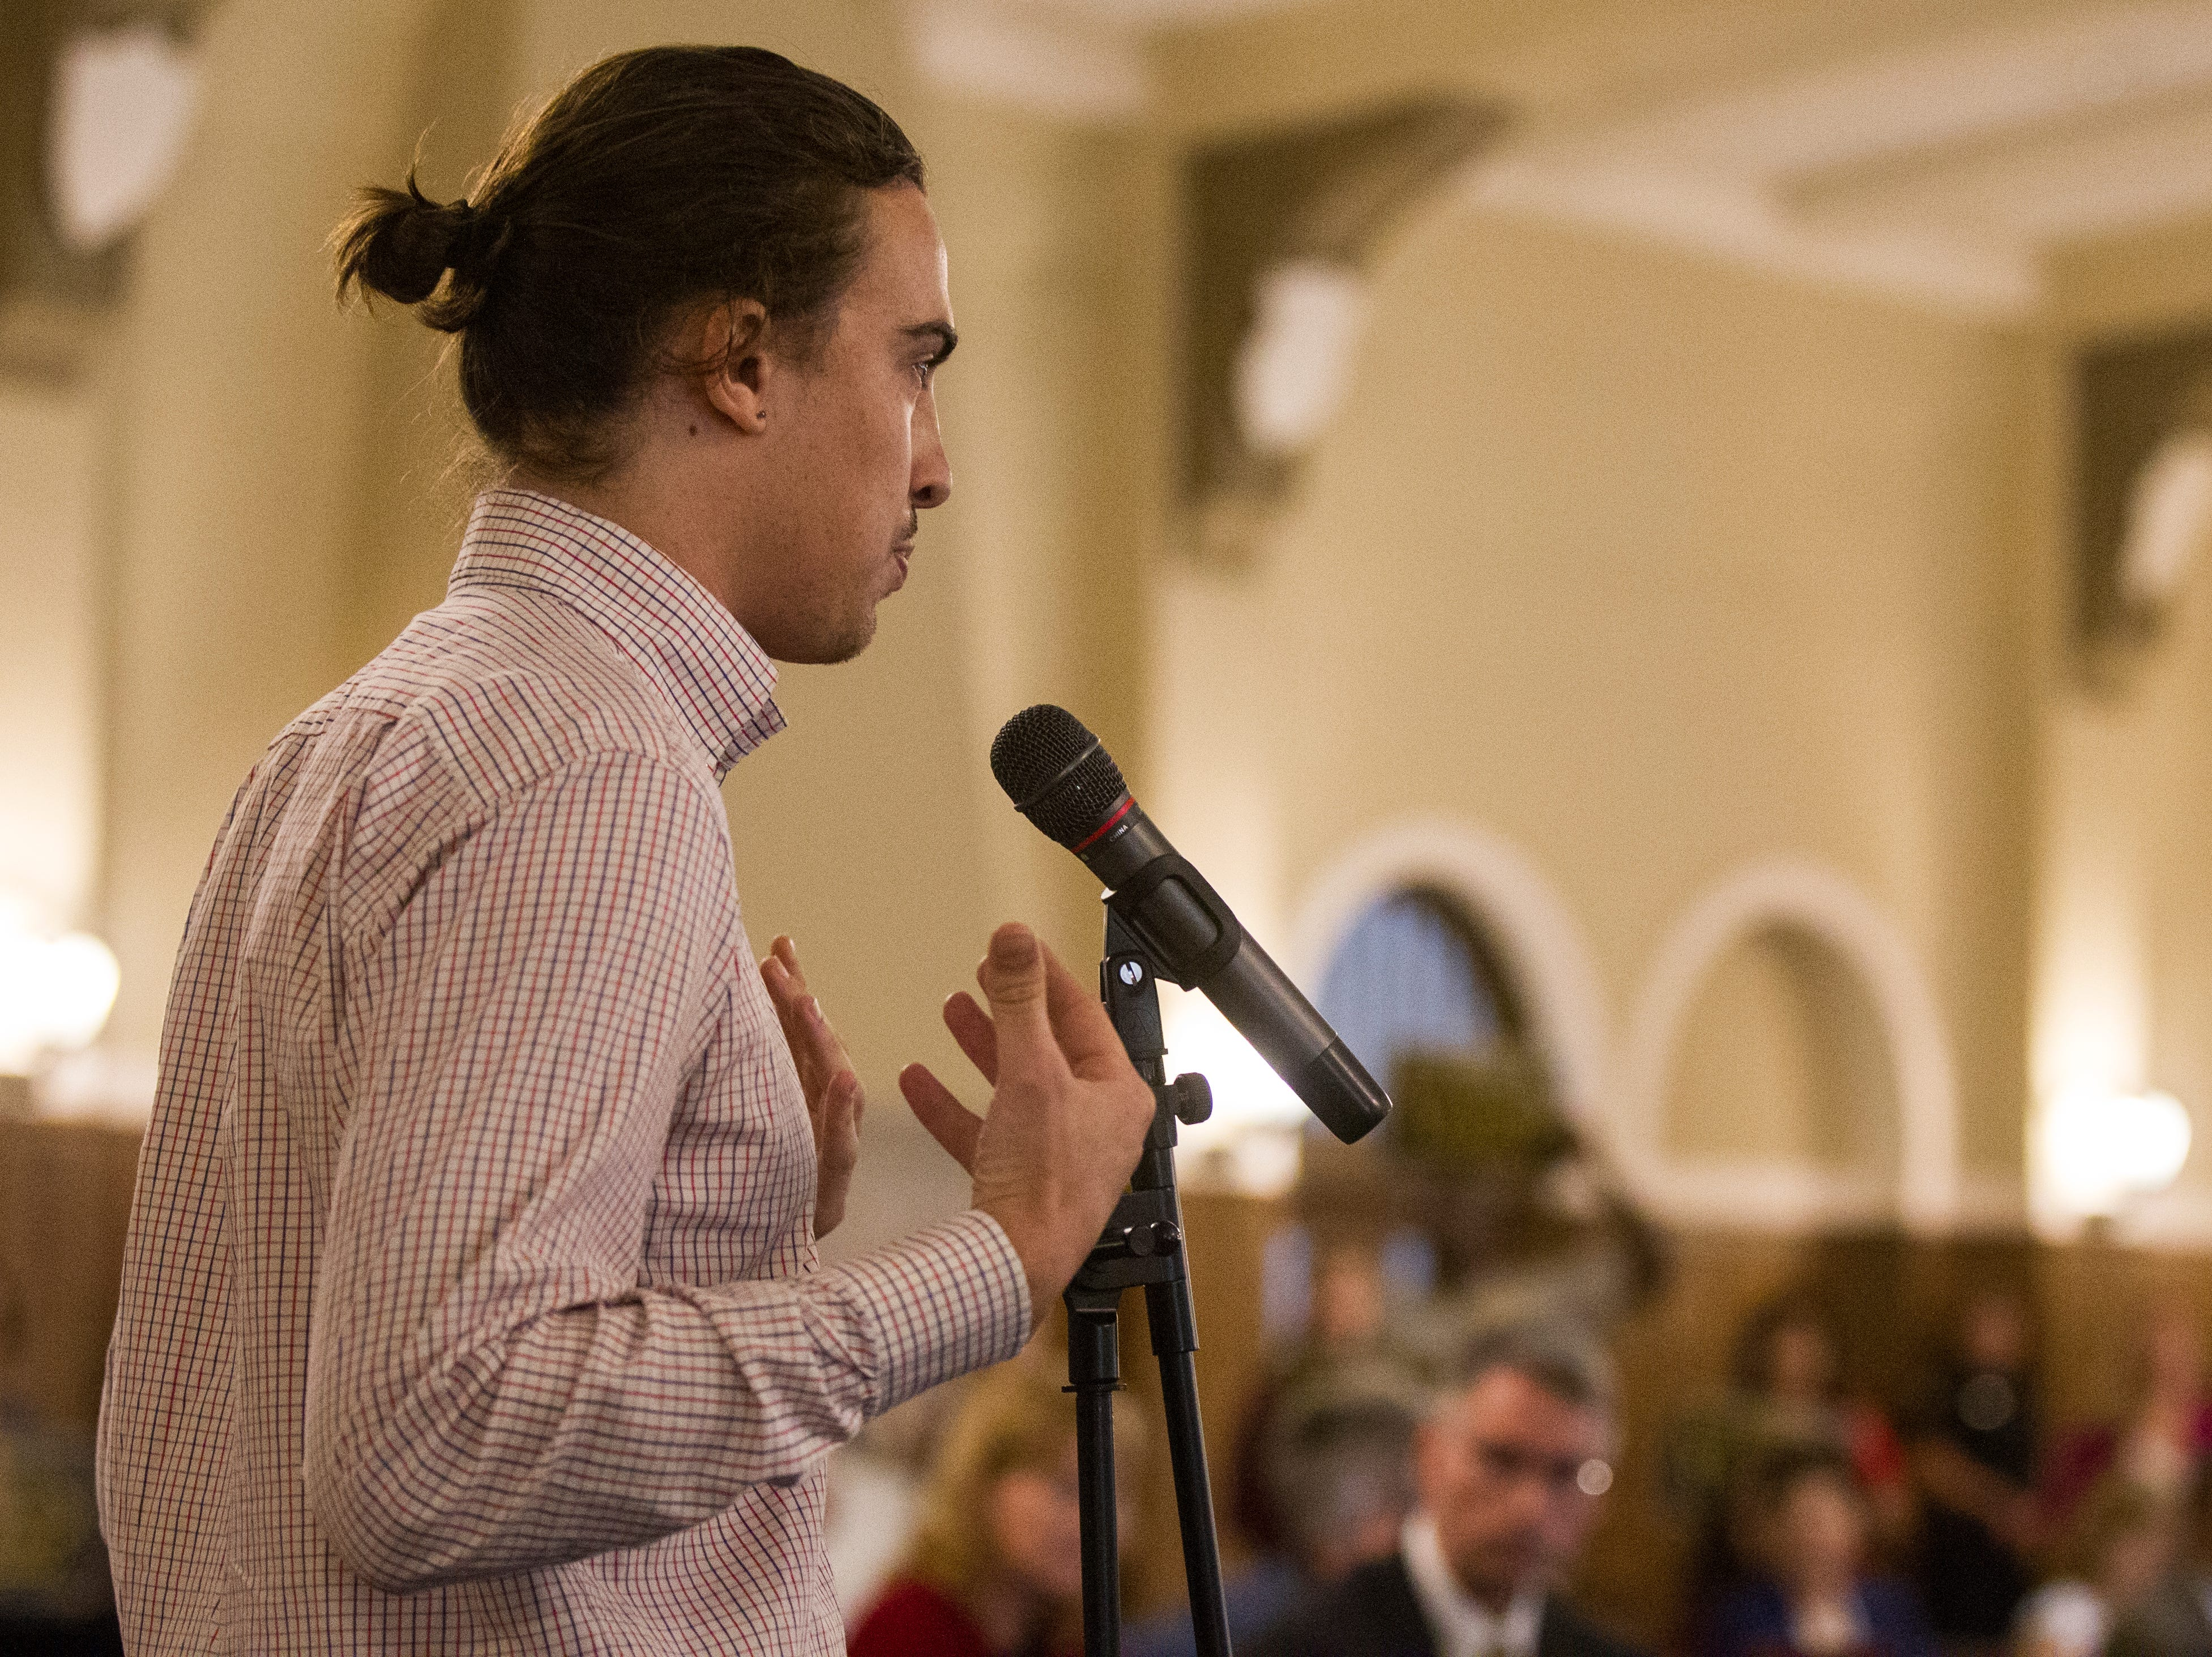 Ryan Hall, a University of Iowa student, speaks during an Iowa Board of Regents meeting on Thursday, Sept. 13, 2018, in the Iowa Memorial Union main ballroom on the University of Iowa campus in Iowa City.